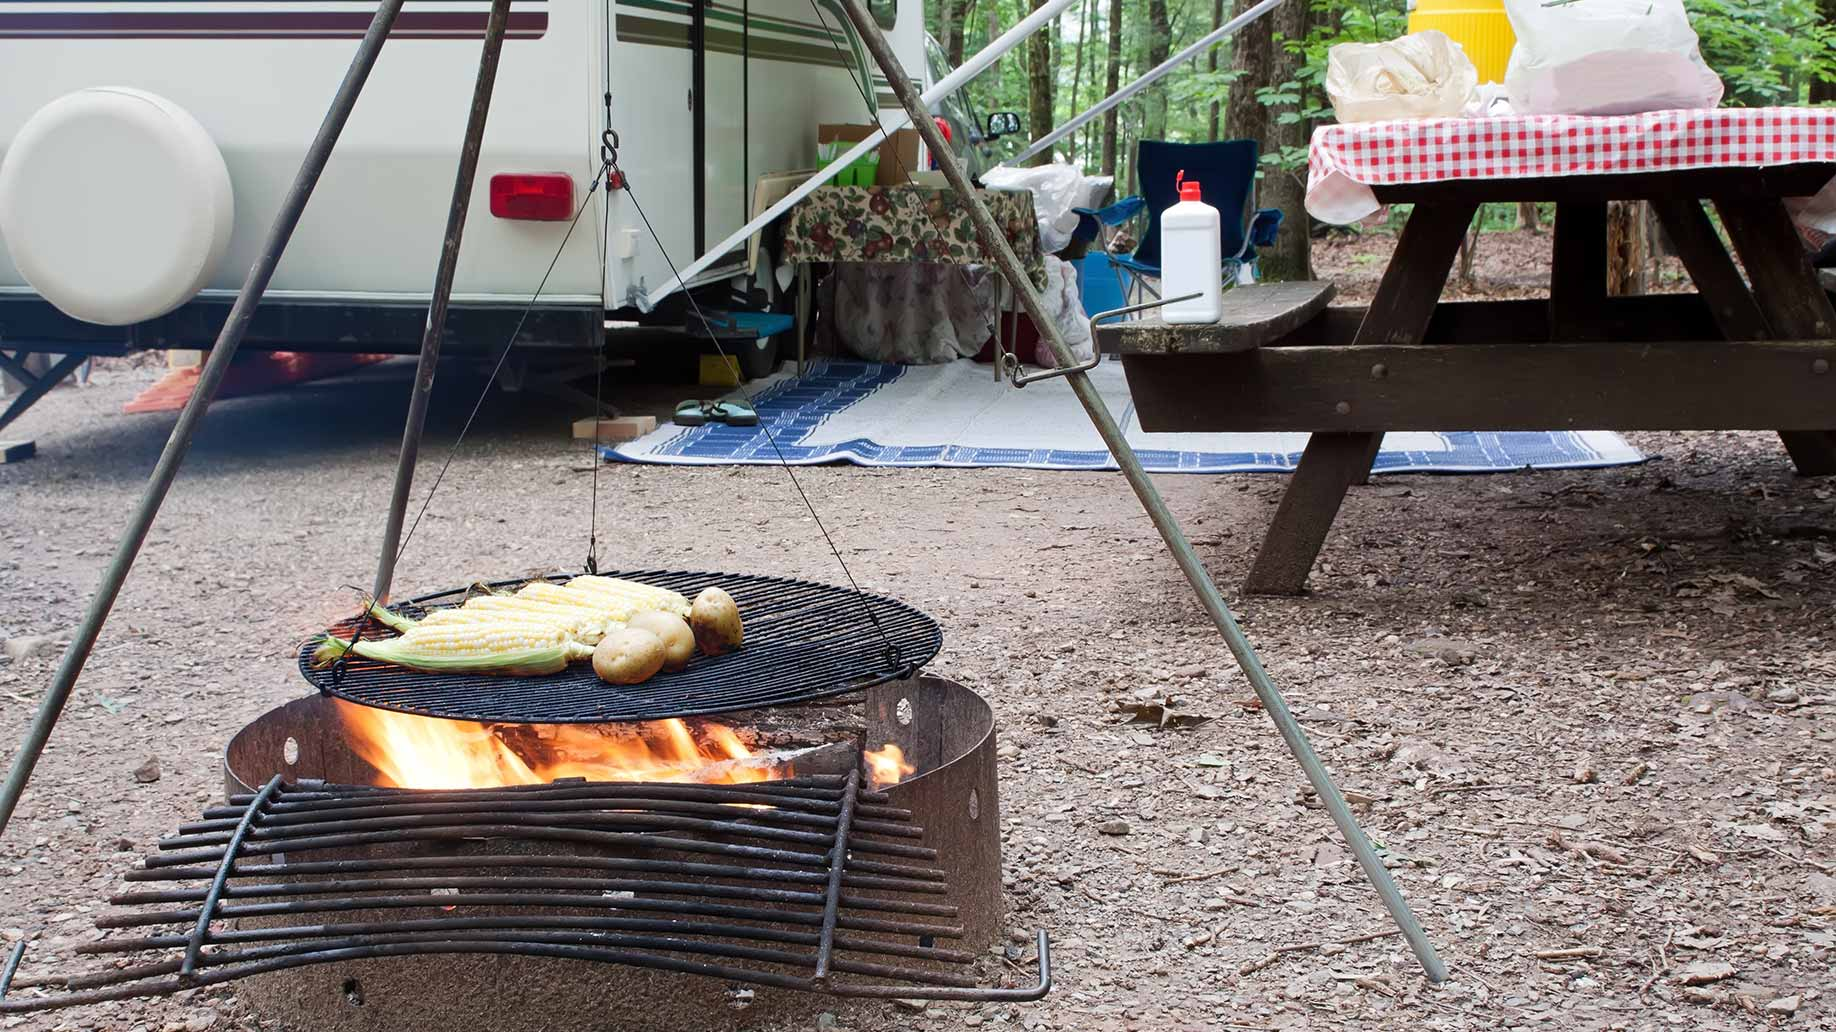 corn and potatoes cooking over a fire at an rv campground